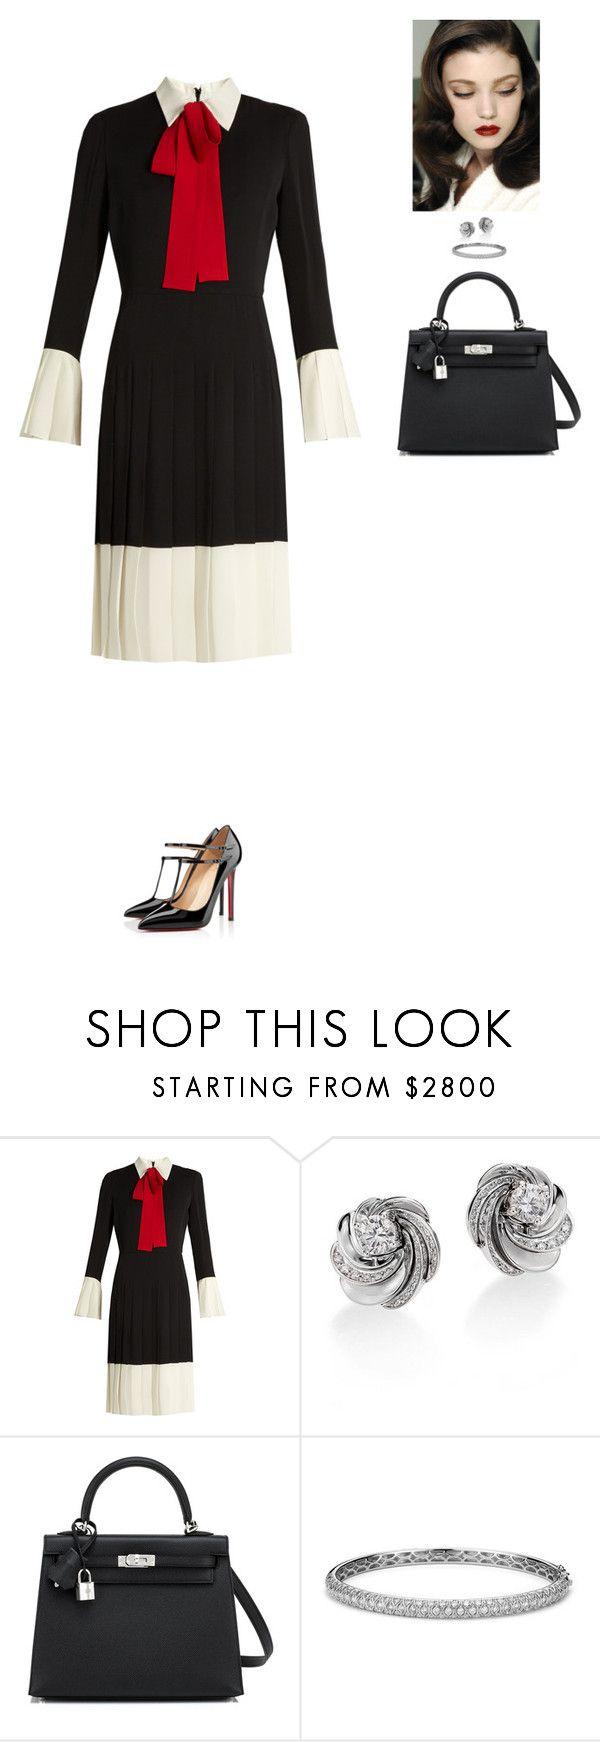 """Outfit 128"" by mickeysmit ❤ liked on Polyvore featuring Gucci, Christian Louboutin, De Beers, Hermès and Blue Nile"